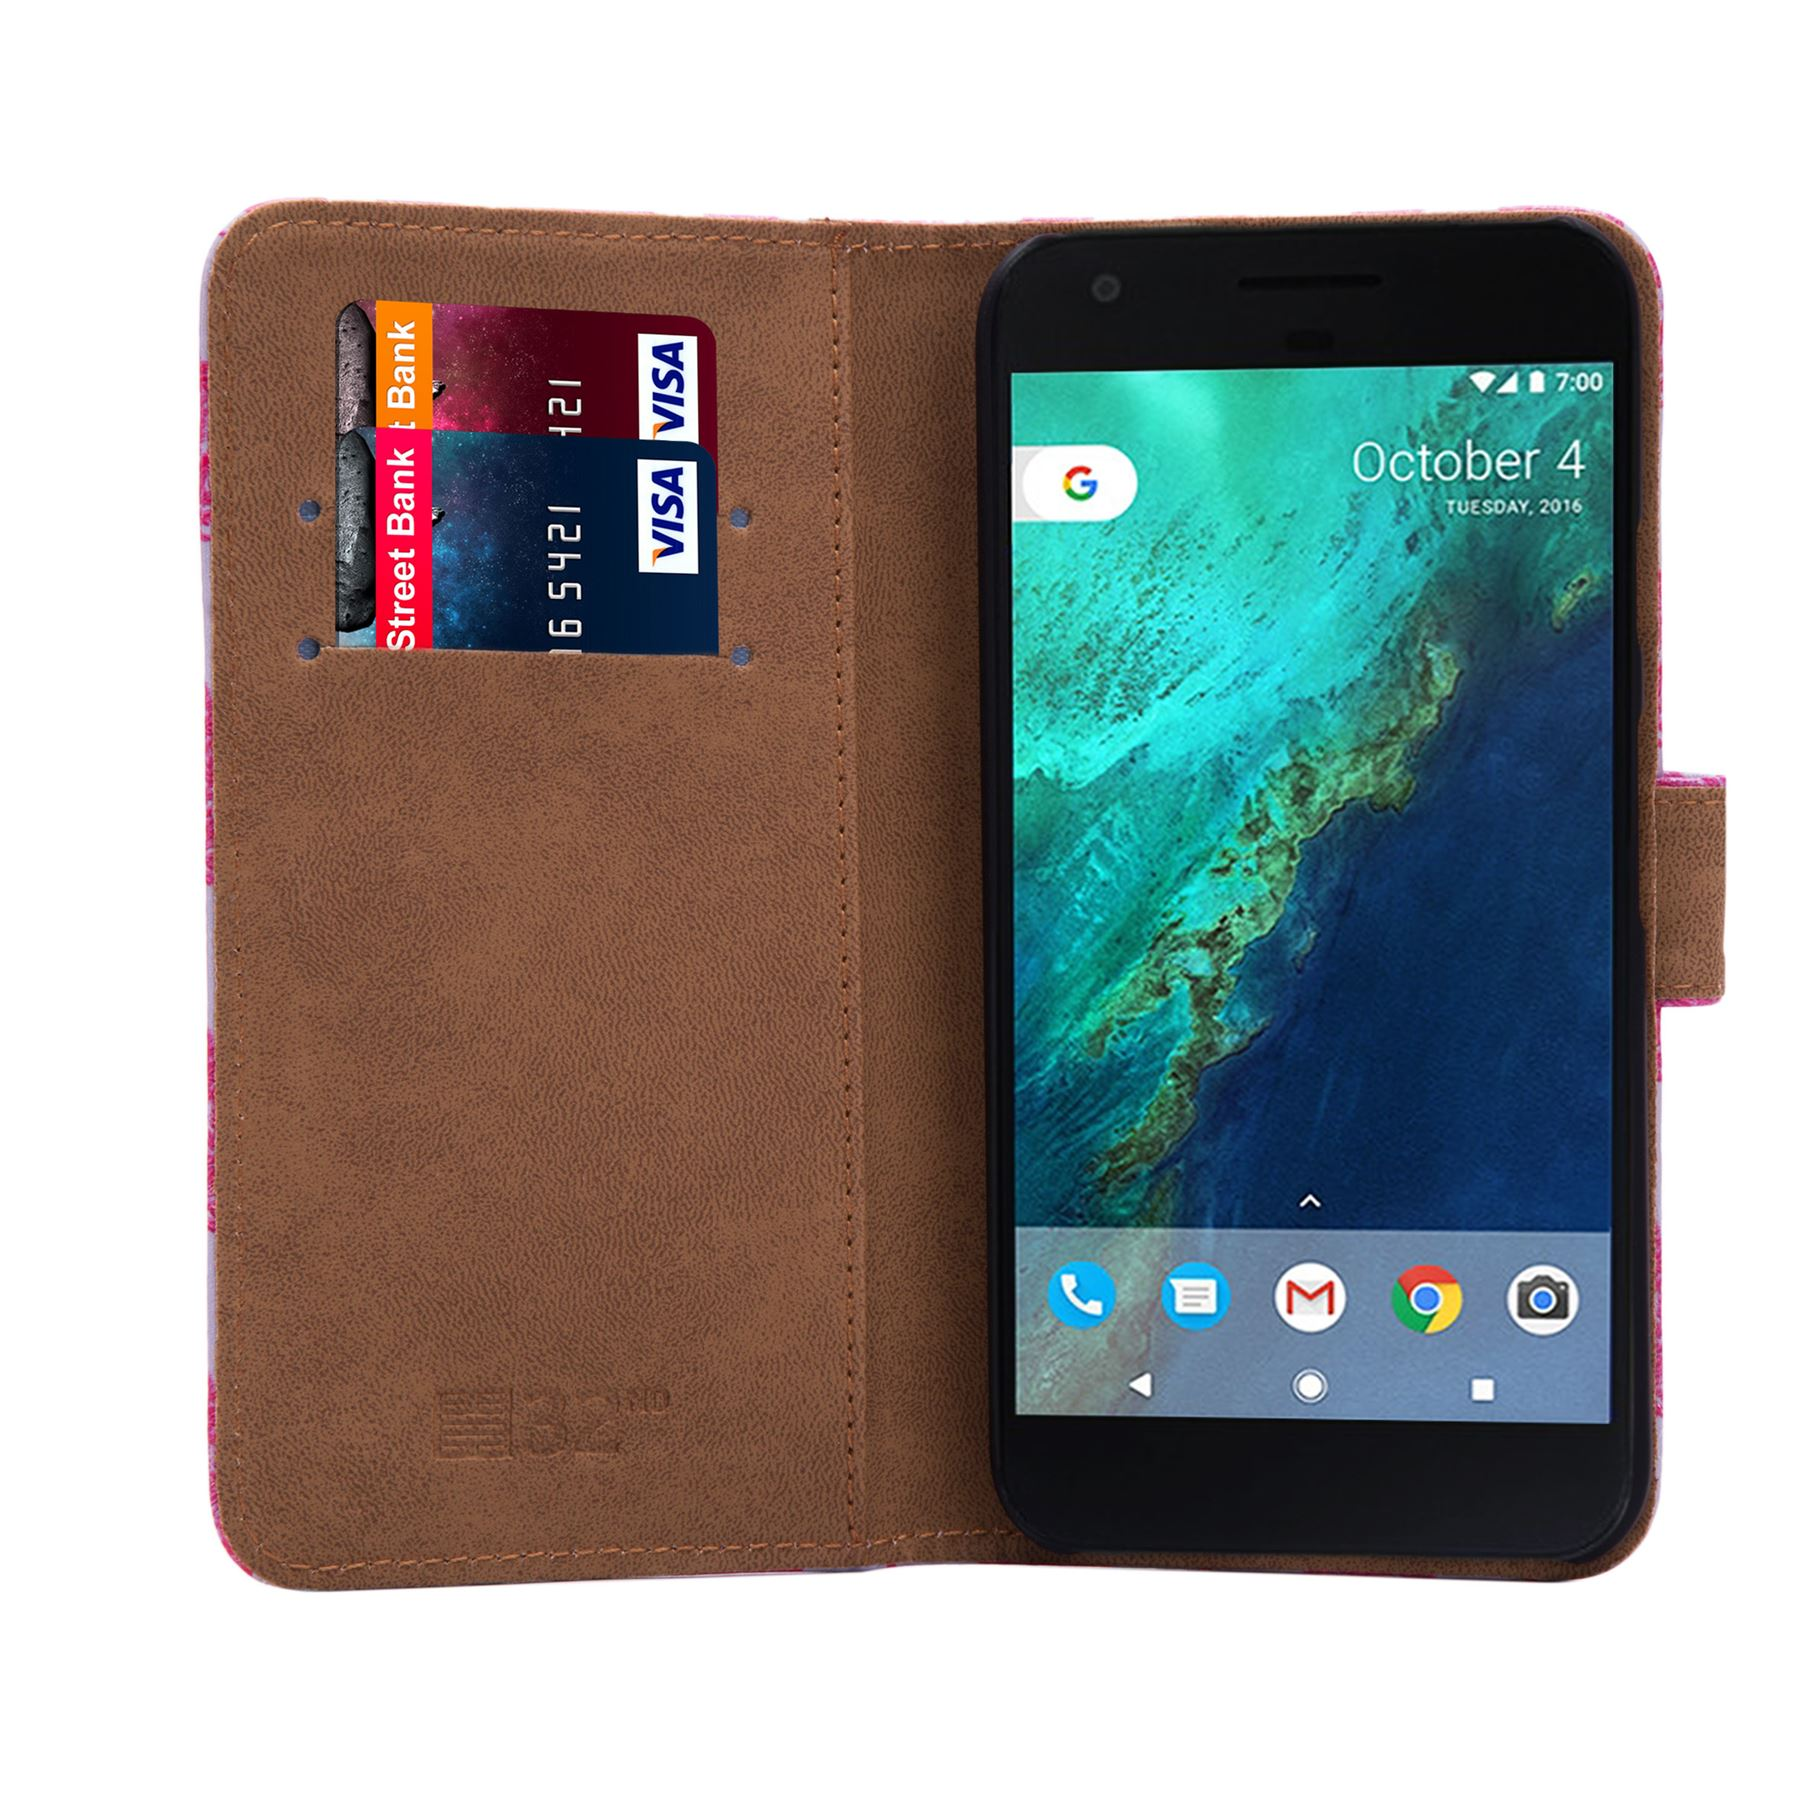 PU-Leather-Floral-Design-Book-Wallet-Case-Cover-For-Google-Pixel thumbnail 23